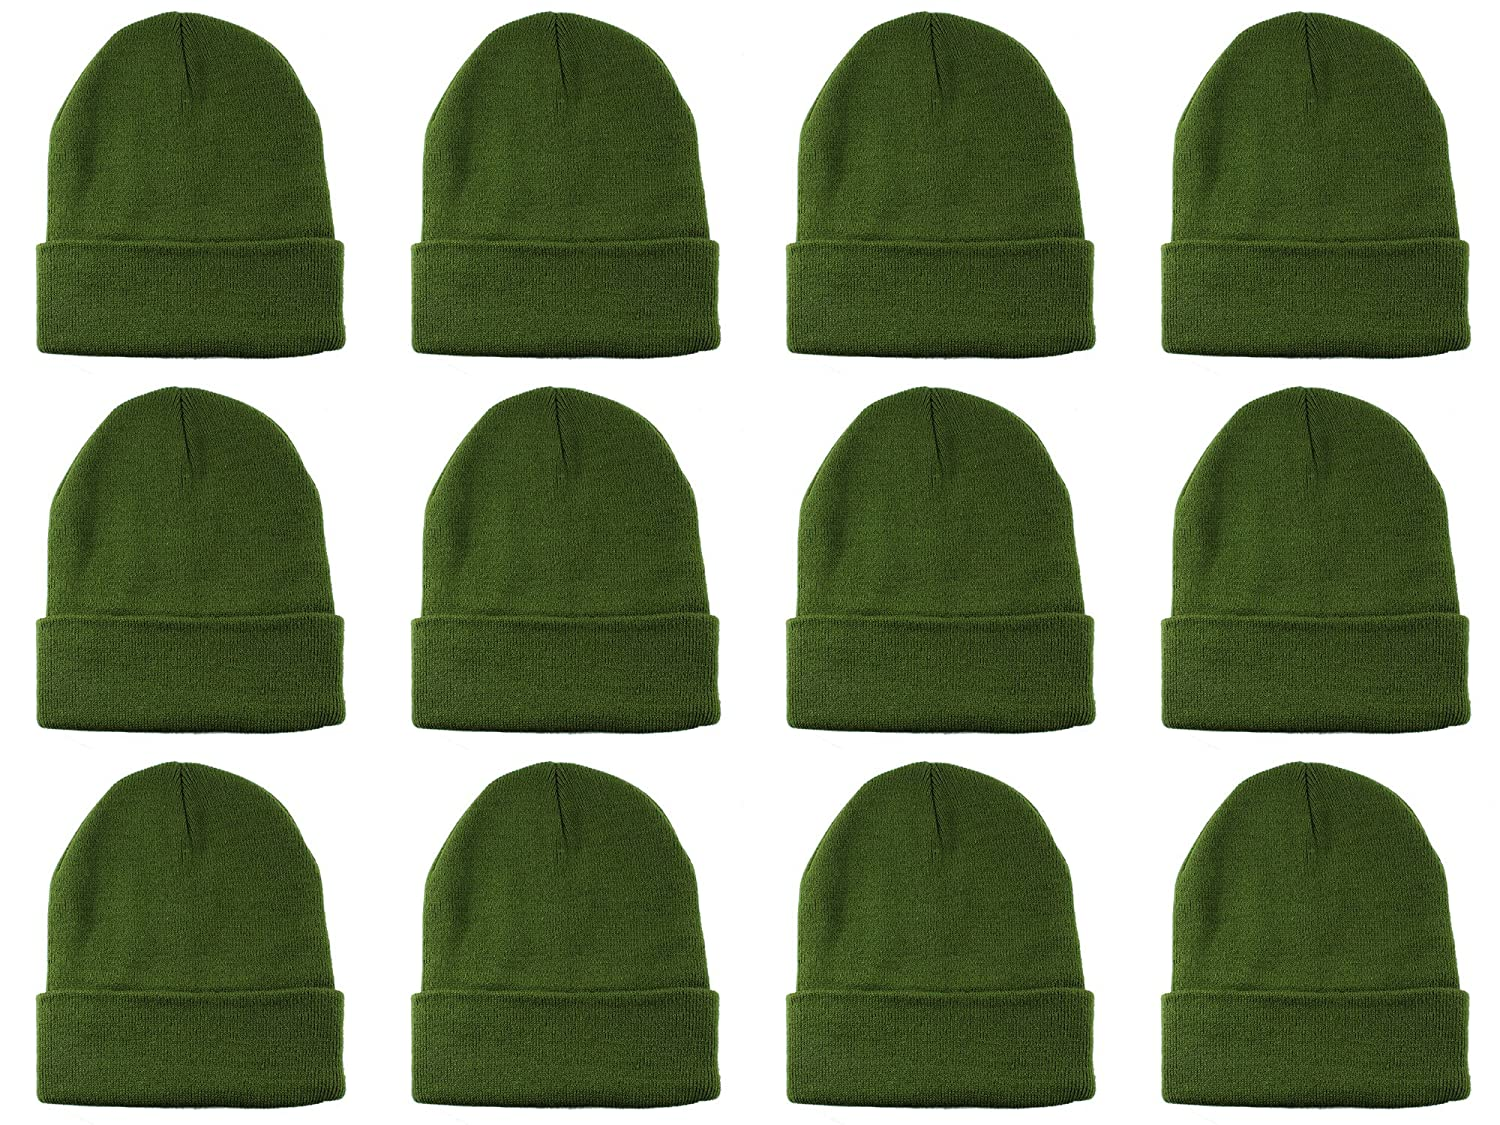 13ff077bbdc4d Gelante Unisex Beanie Cap Knitted Warm Solid Color Multi-Packs (12 Pack   Olive Green) at Amazon Men s Clothing store